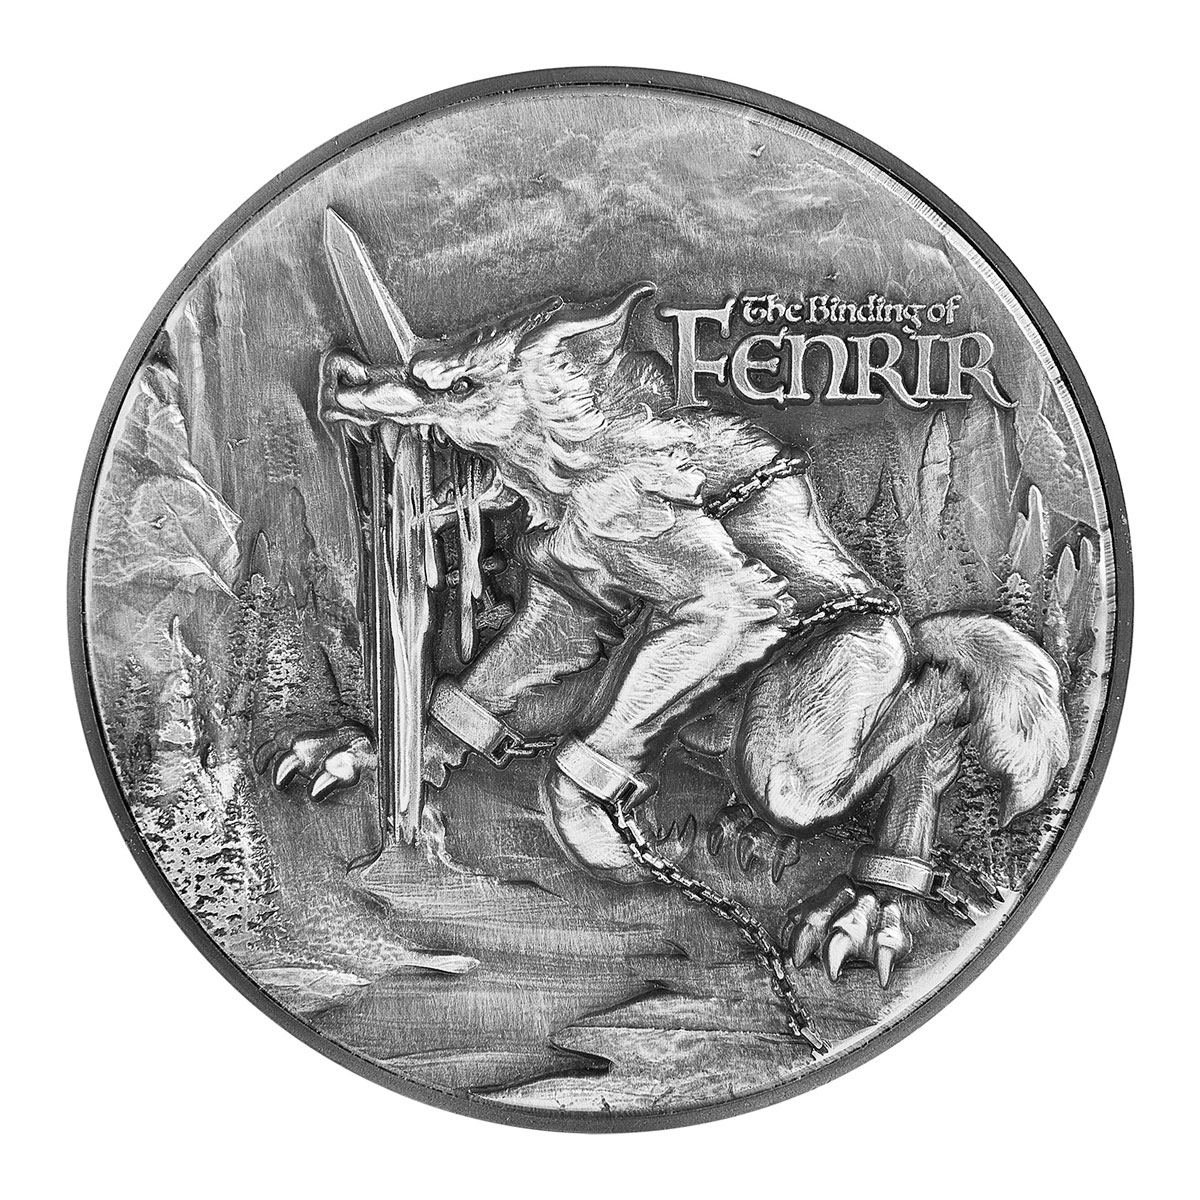 2021 Republic of Chad The Binding of Fenrir High Relief 2 oz Silver Antiqued Fr10,000 Coin